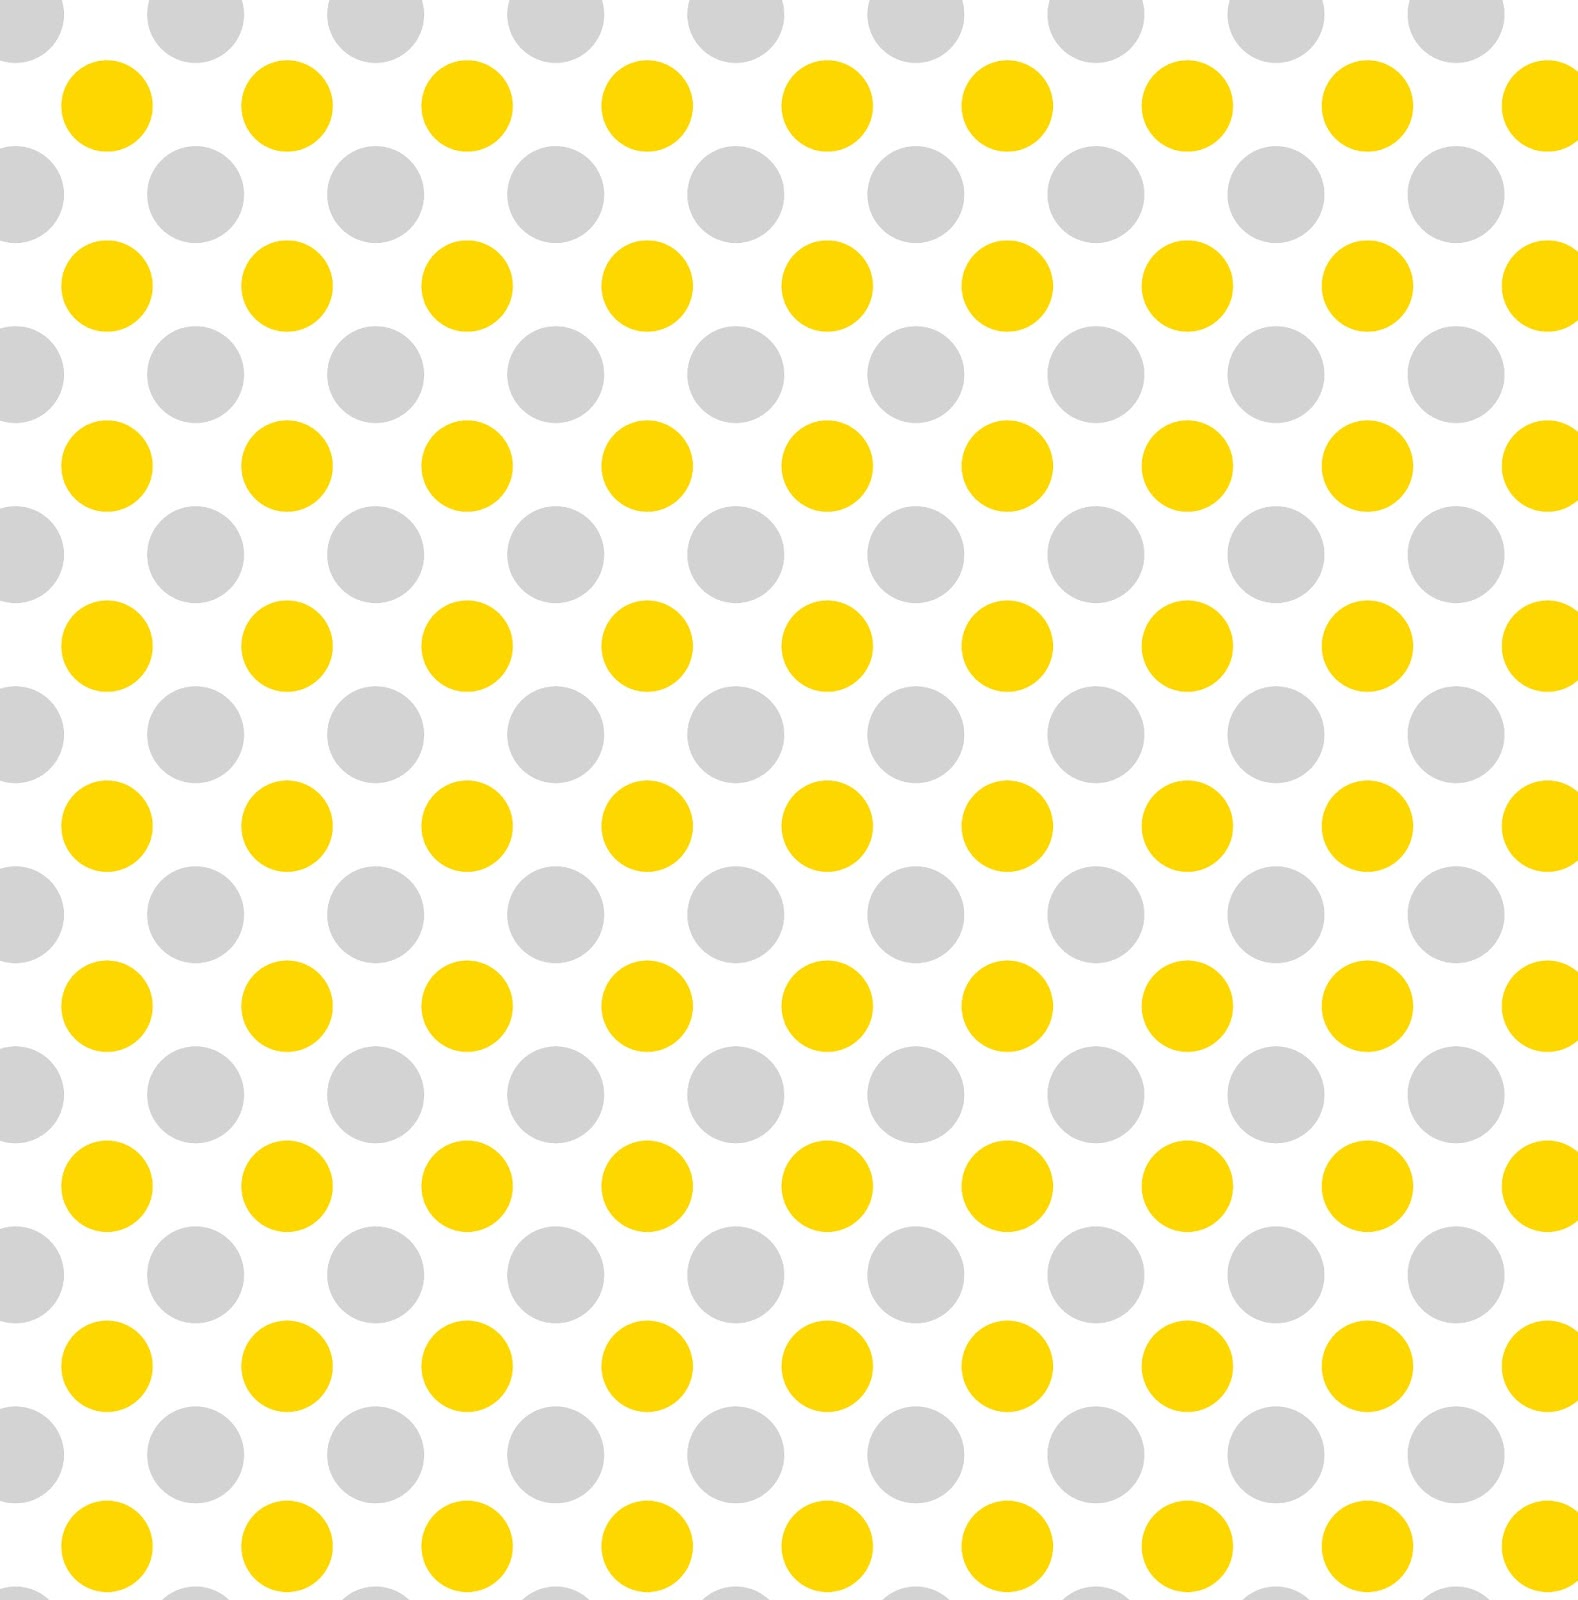 gold polka dot background images pictures becuo